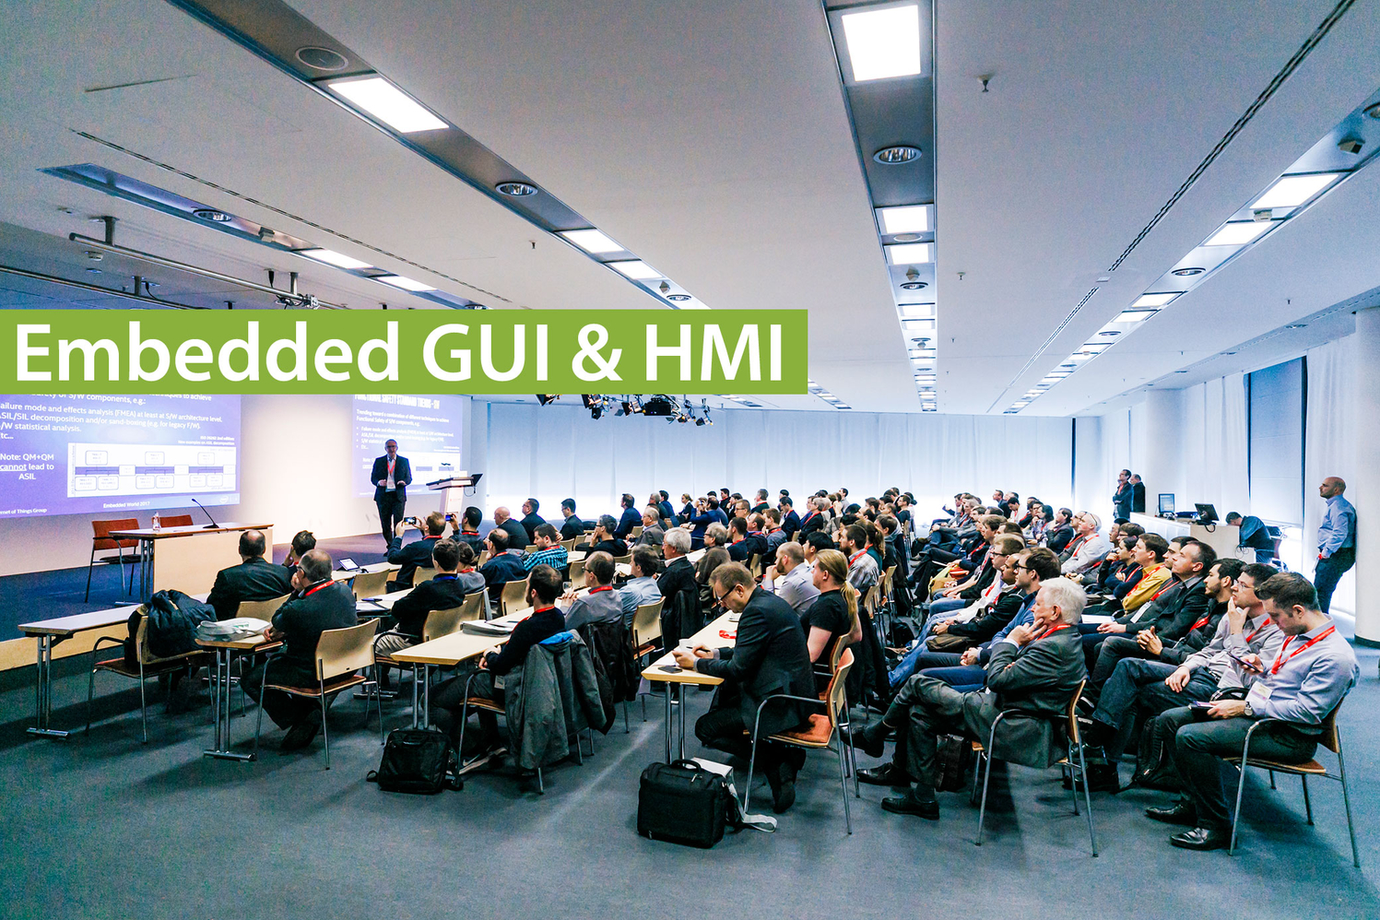 embedded world Conference - Embedded GUI & HMI